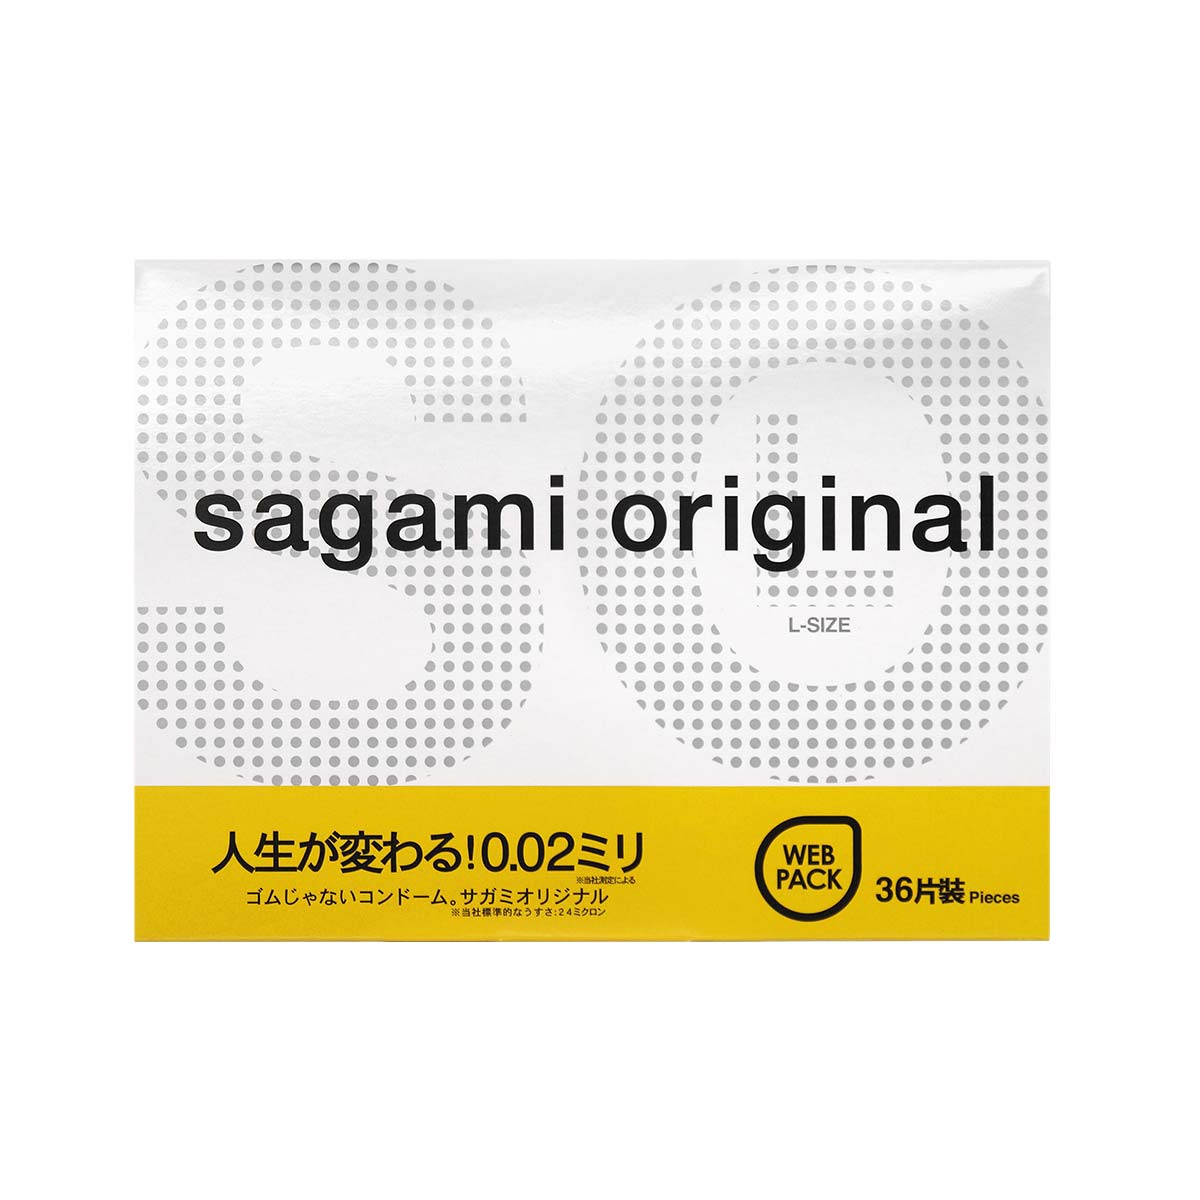 Sagami Original 0.02 L-size 58mm 36's Pack PU Condom (Defective Packaging)